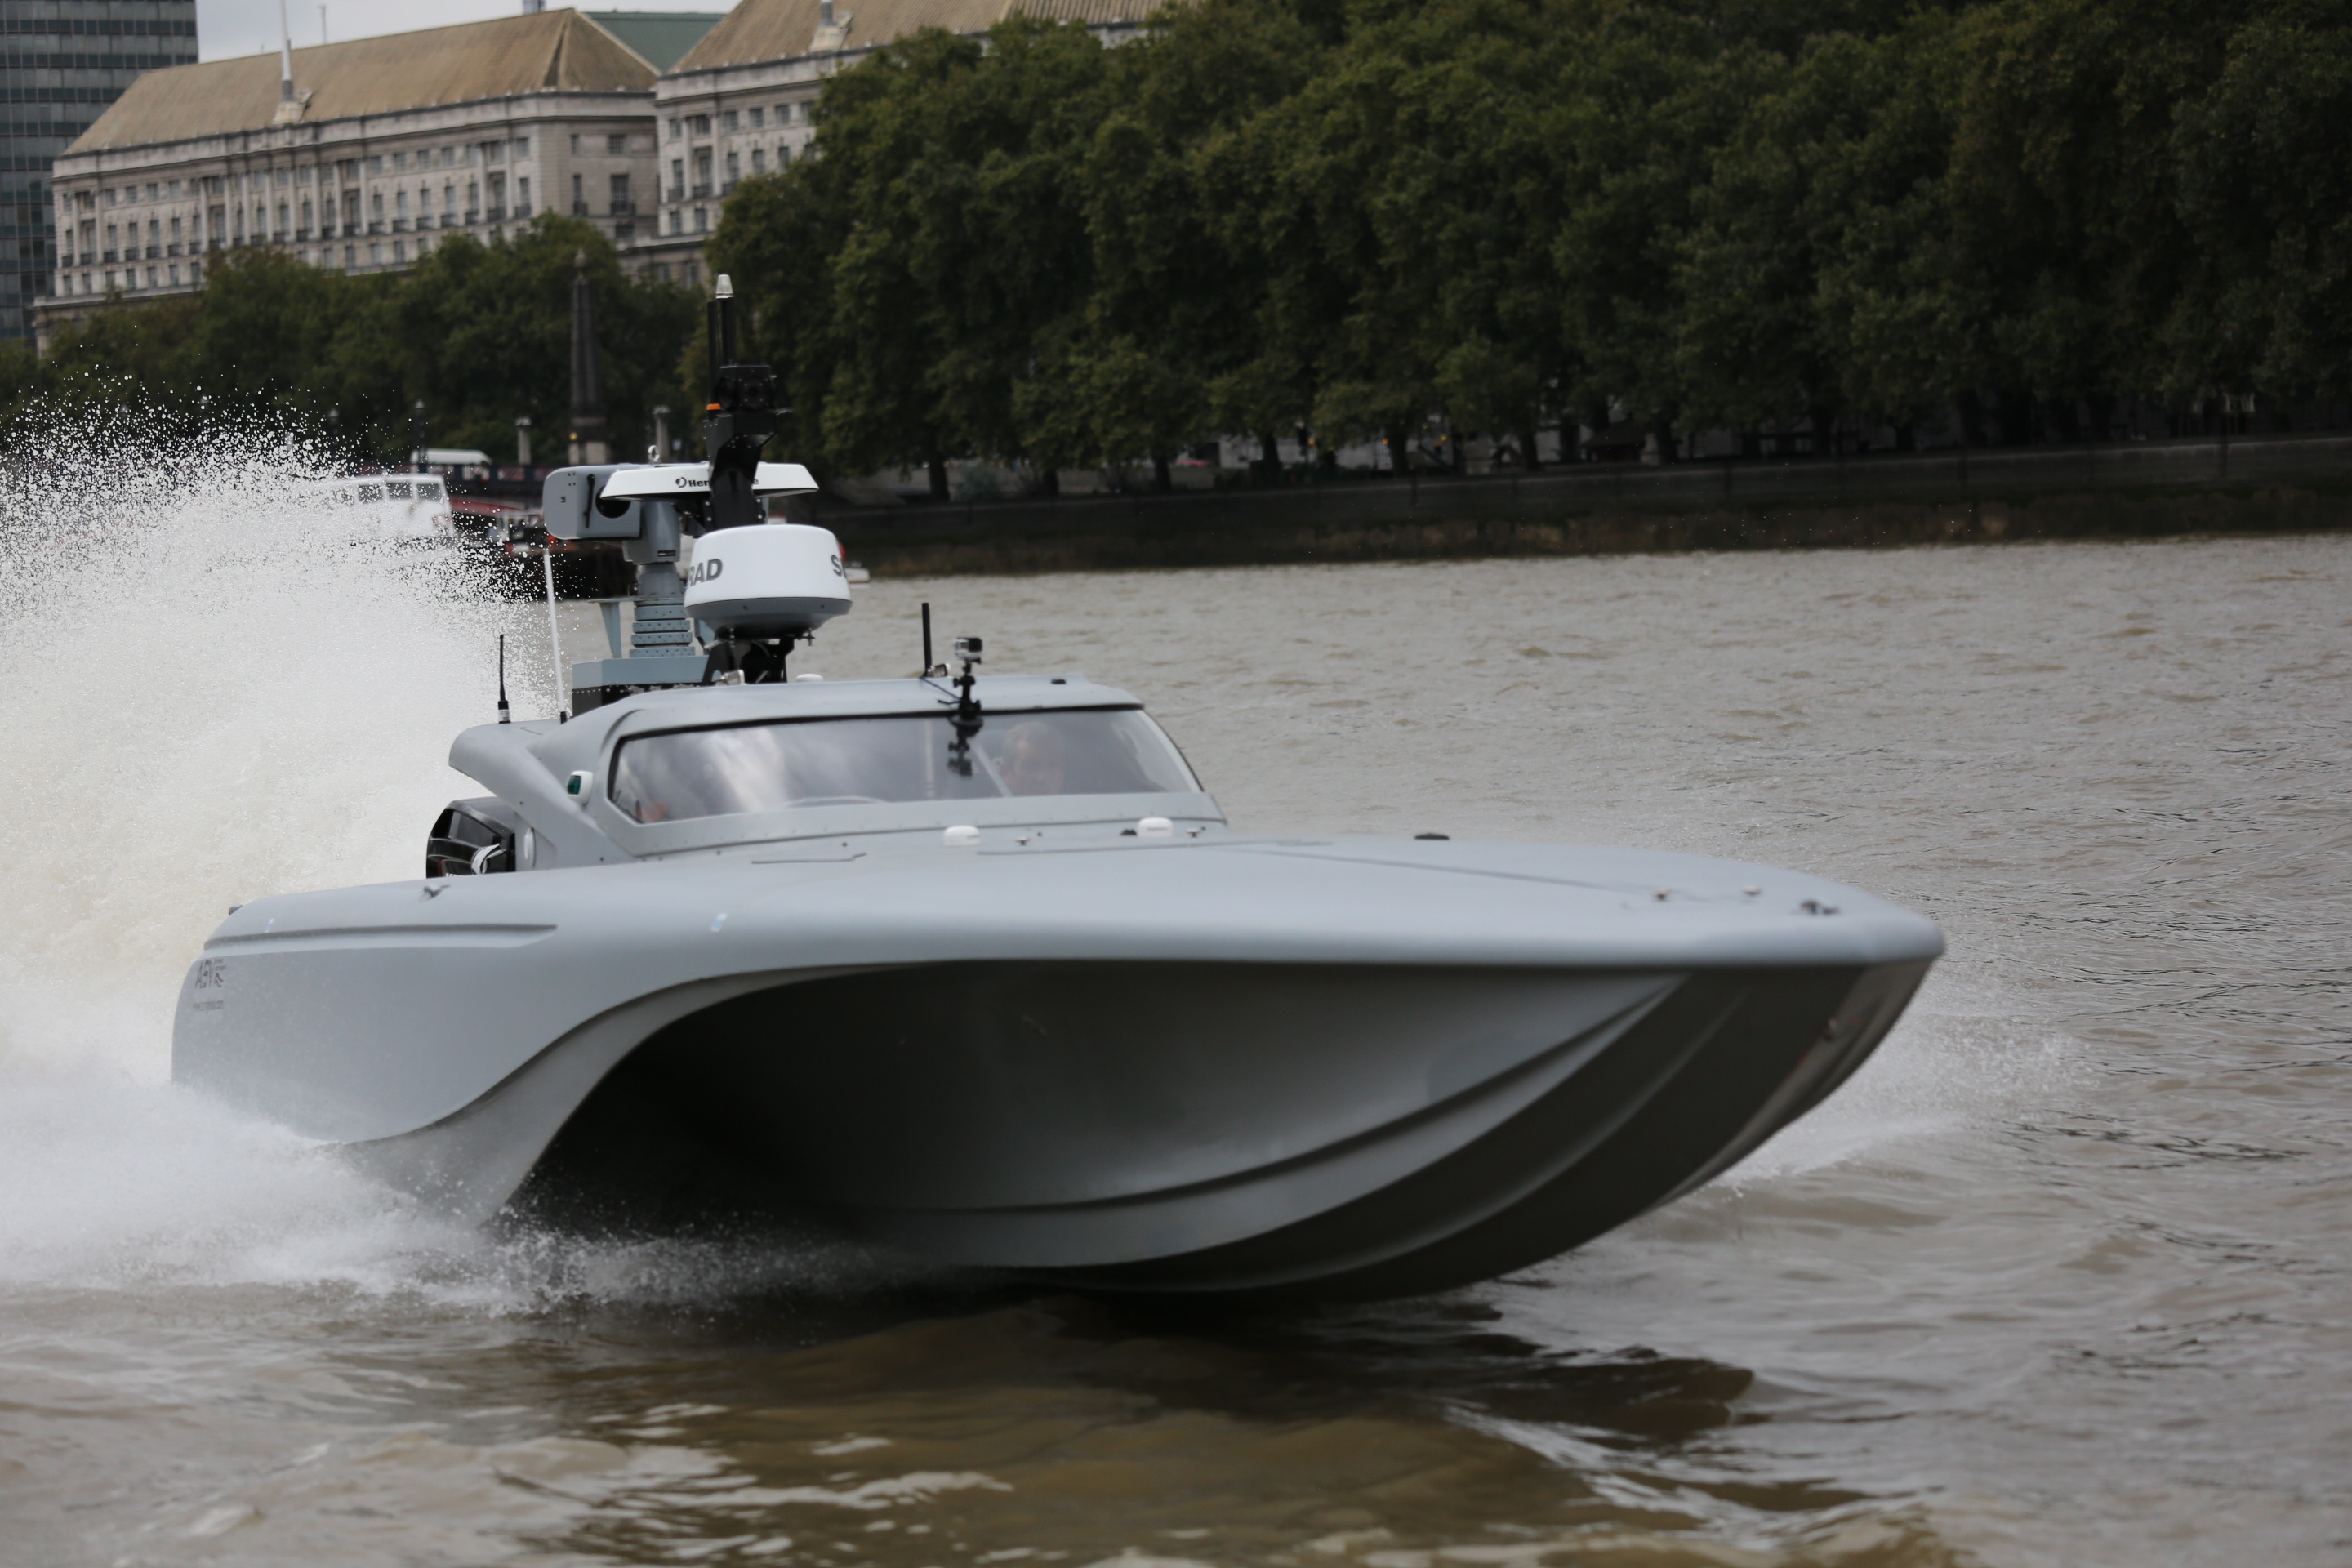 mod-mast-royal-navy-drone-boat-tower-bridge5.jpg